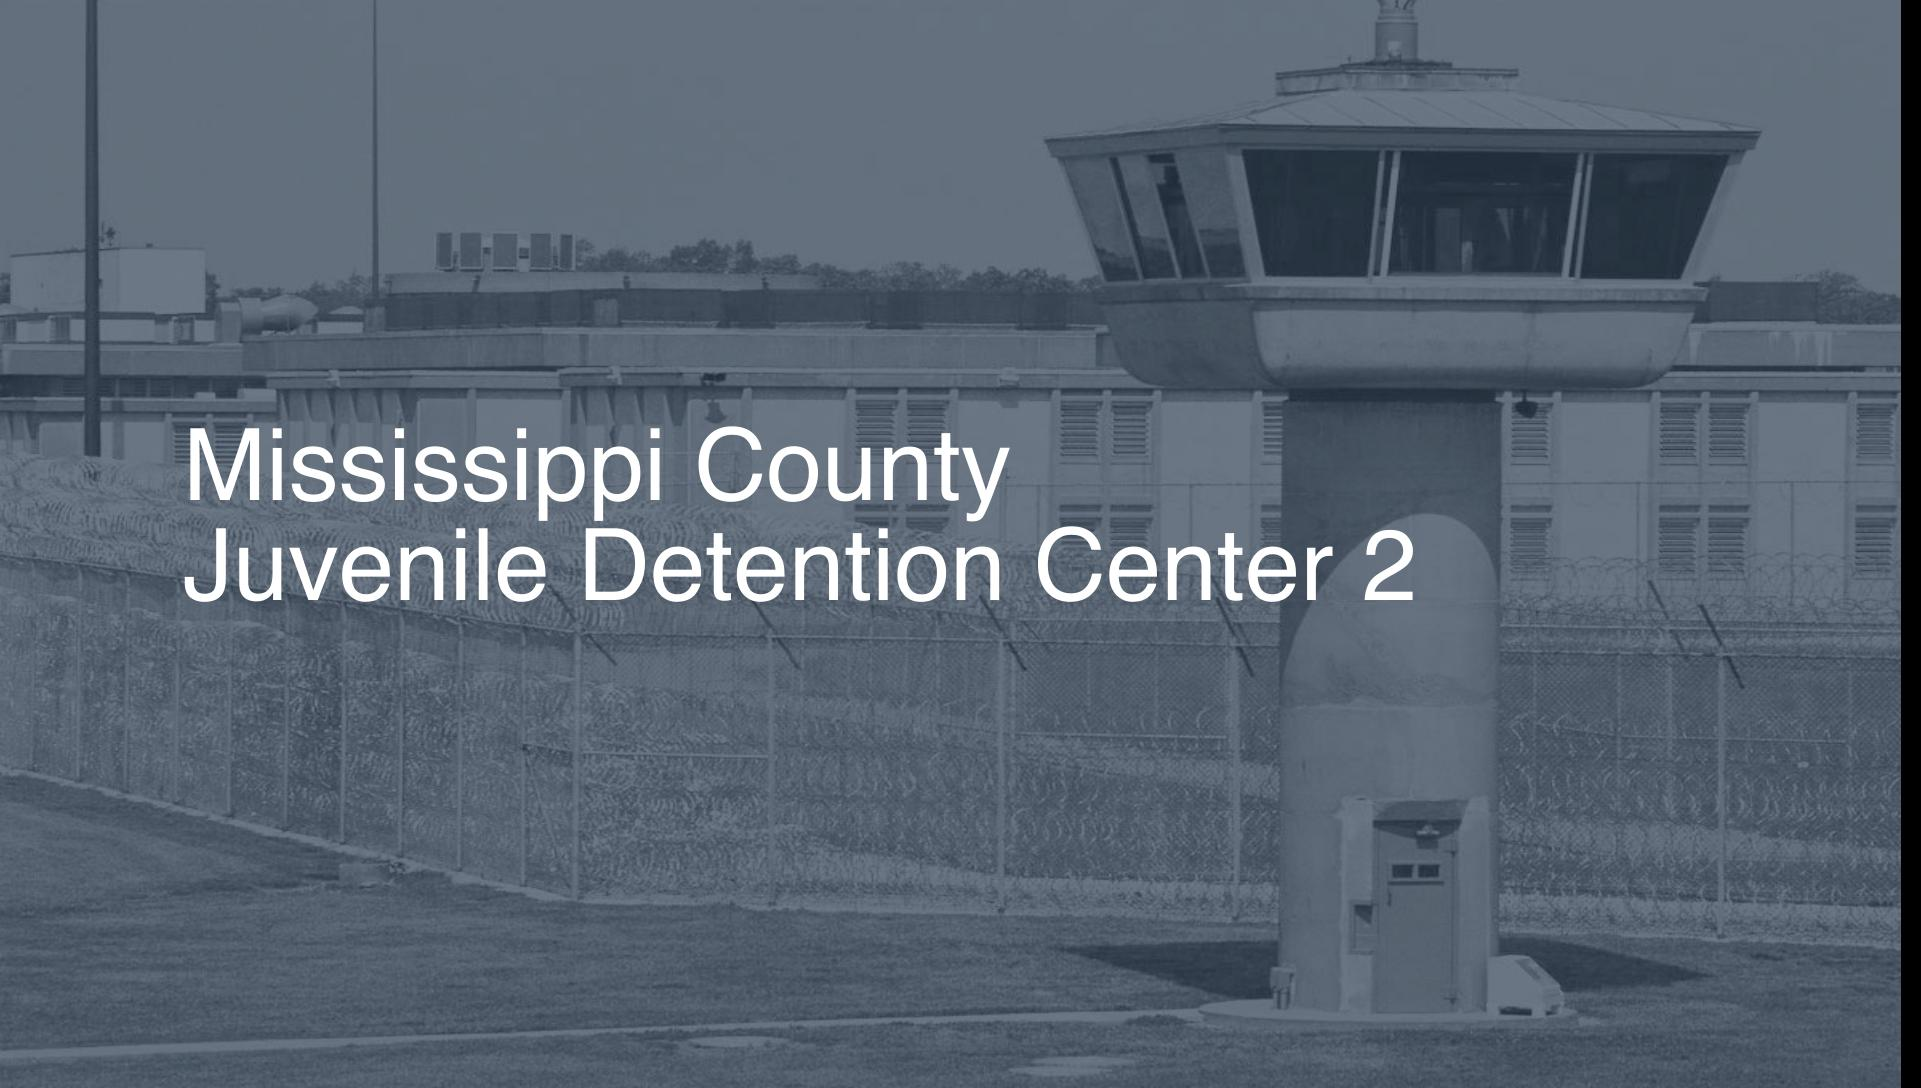 Mississippi County Juvenile Detention Center correctional facility picture